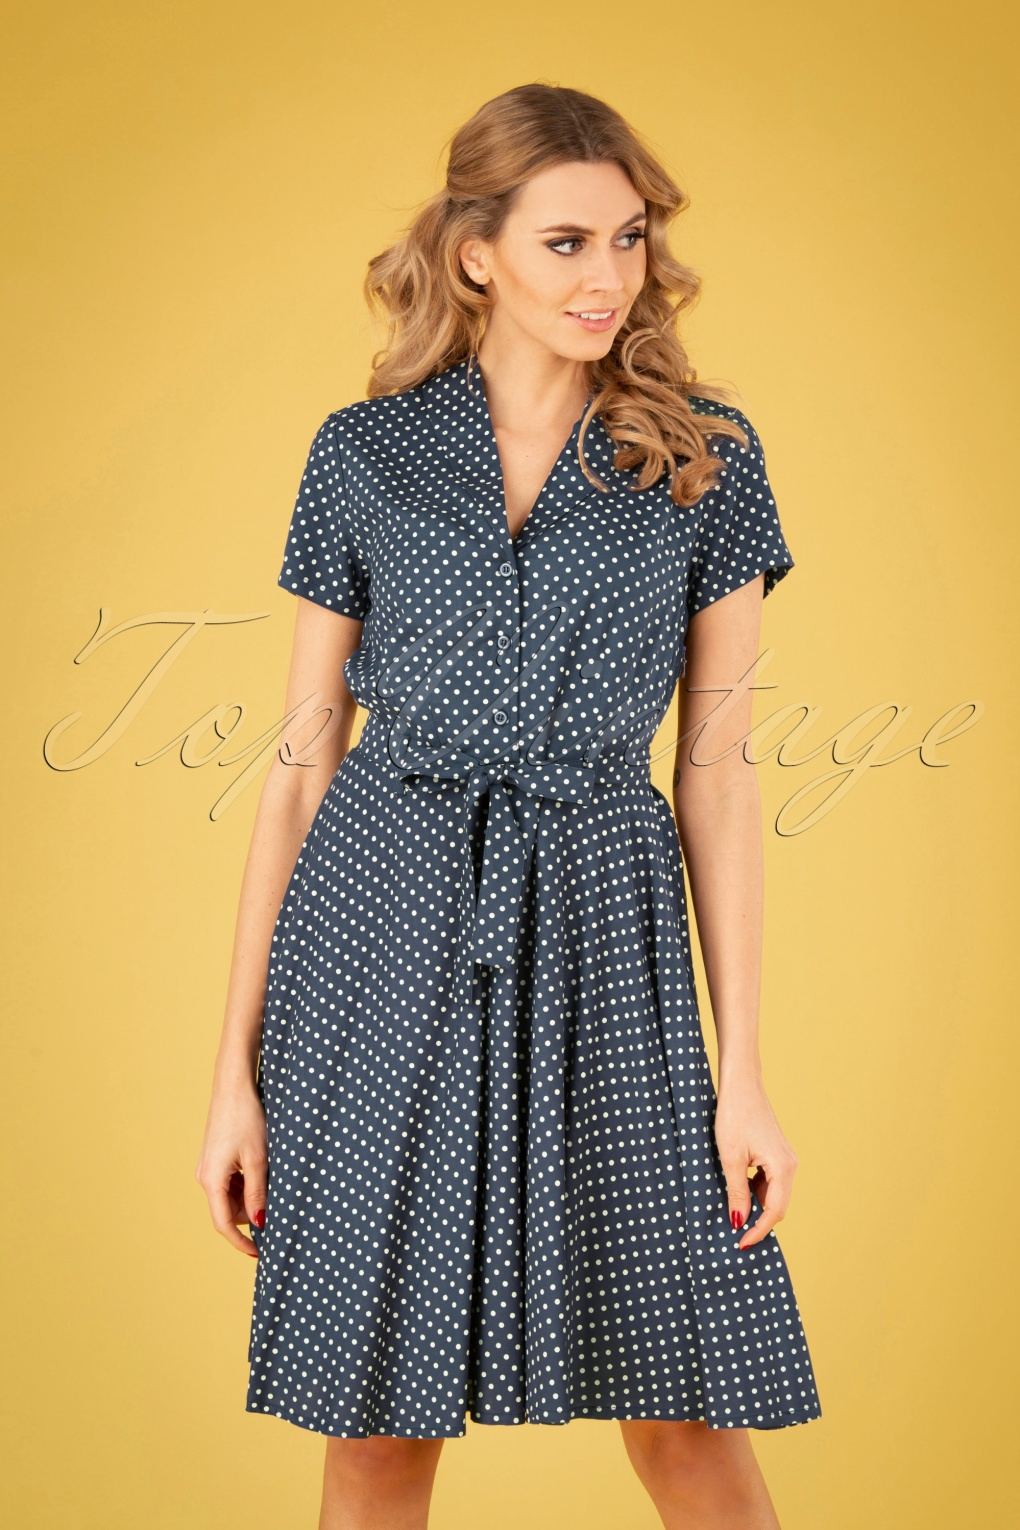 60s Dresses | 1960s Dresses Mod, Mini, Hippie 60s Hilda Polka Dot Swing Dress in Navy £24.95 AT vintagedancer.com